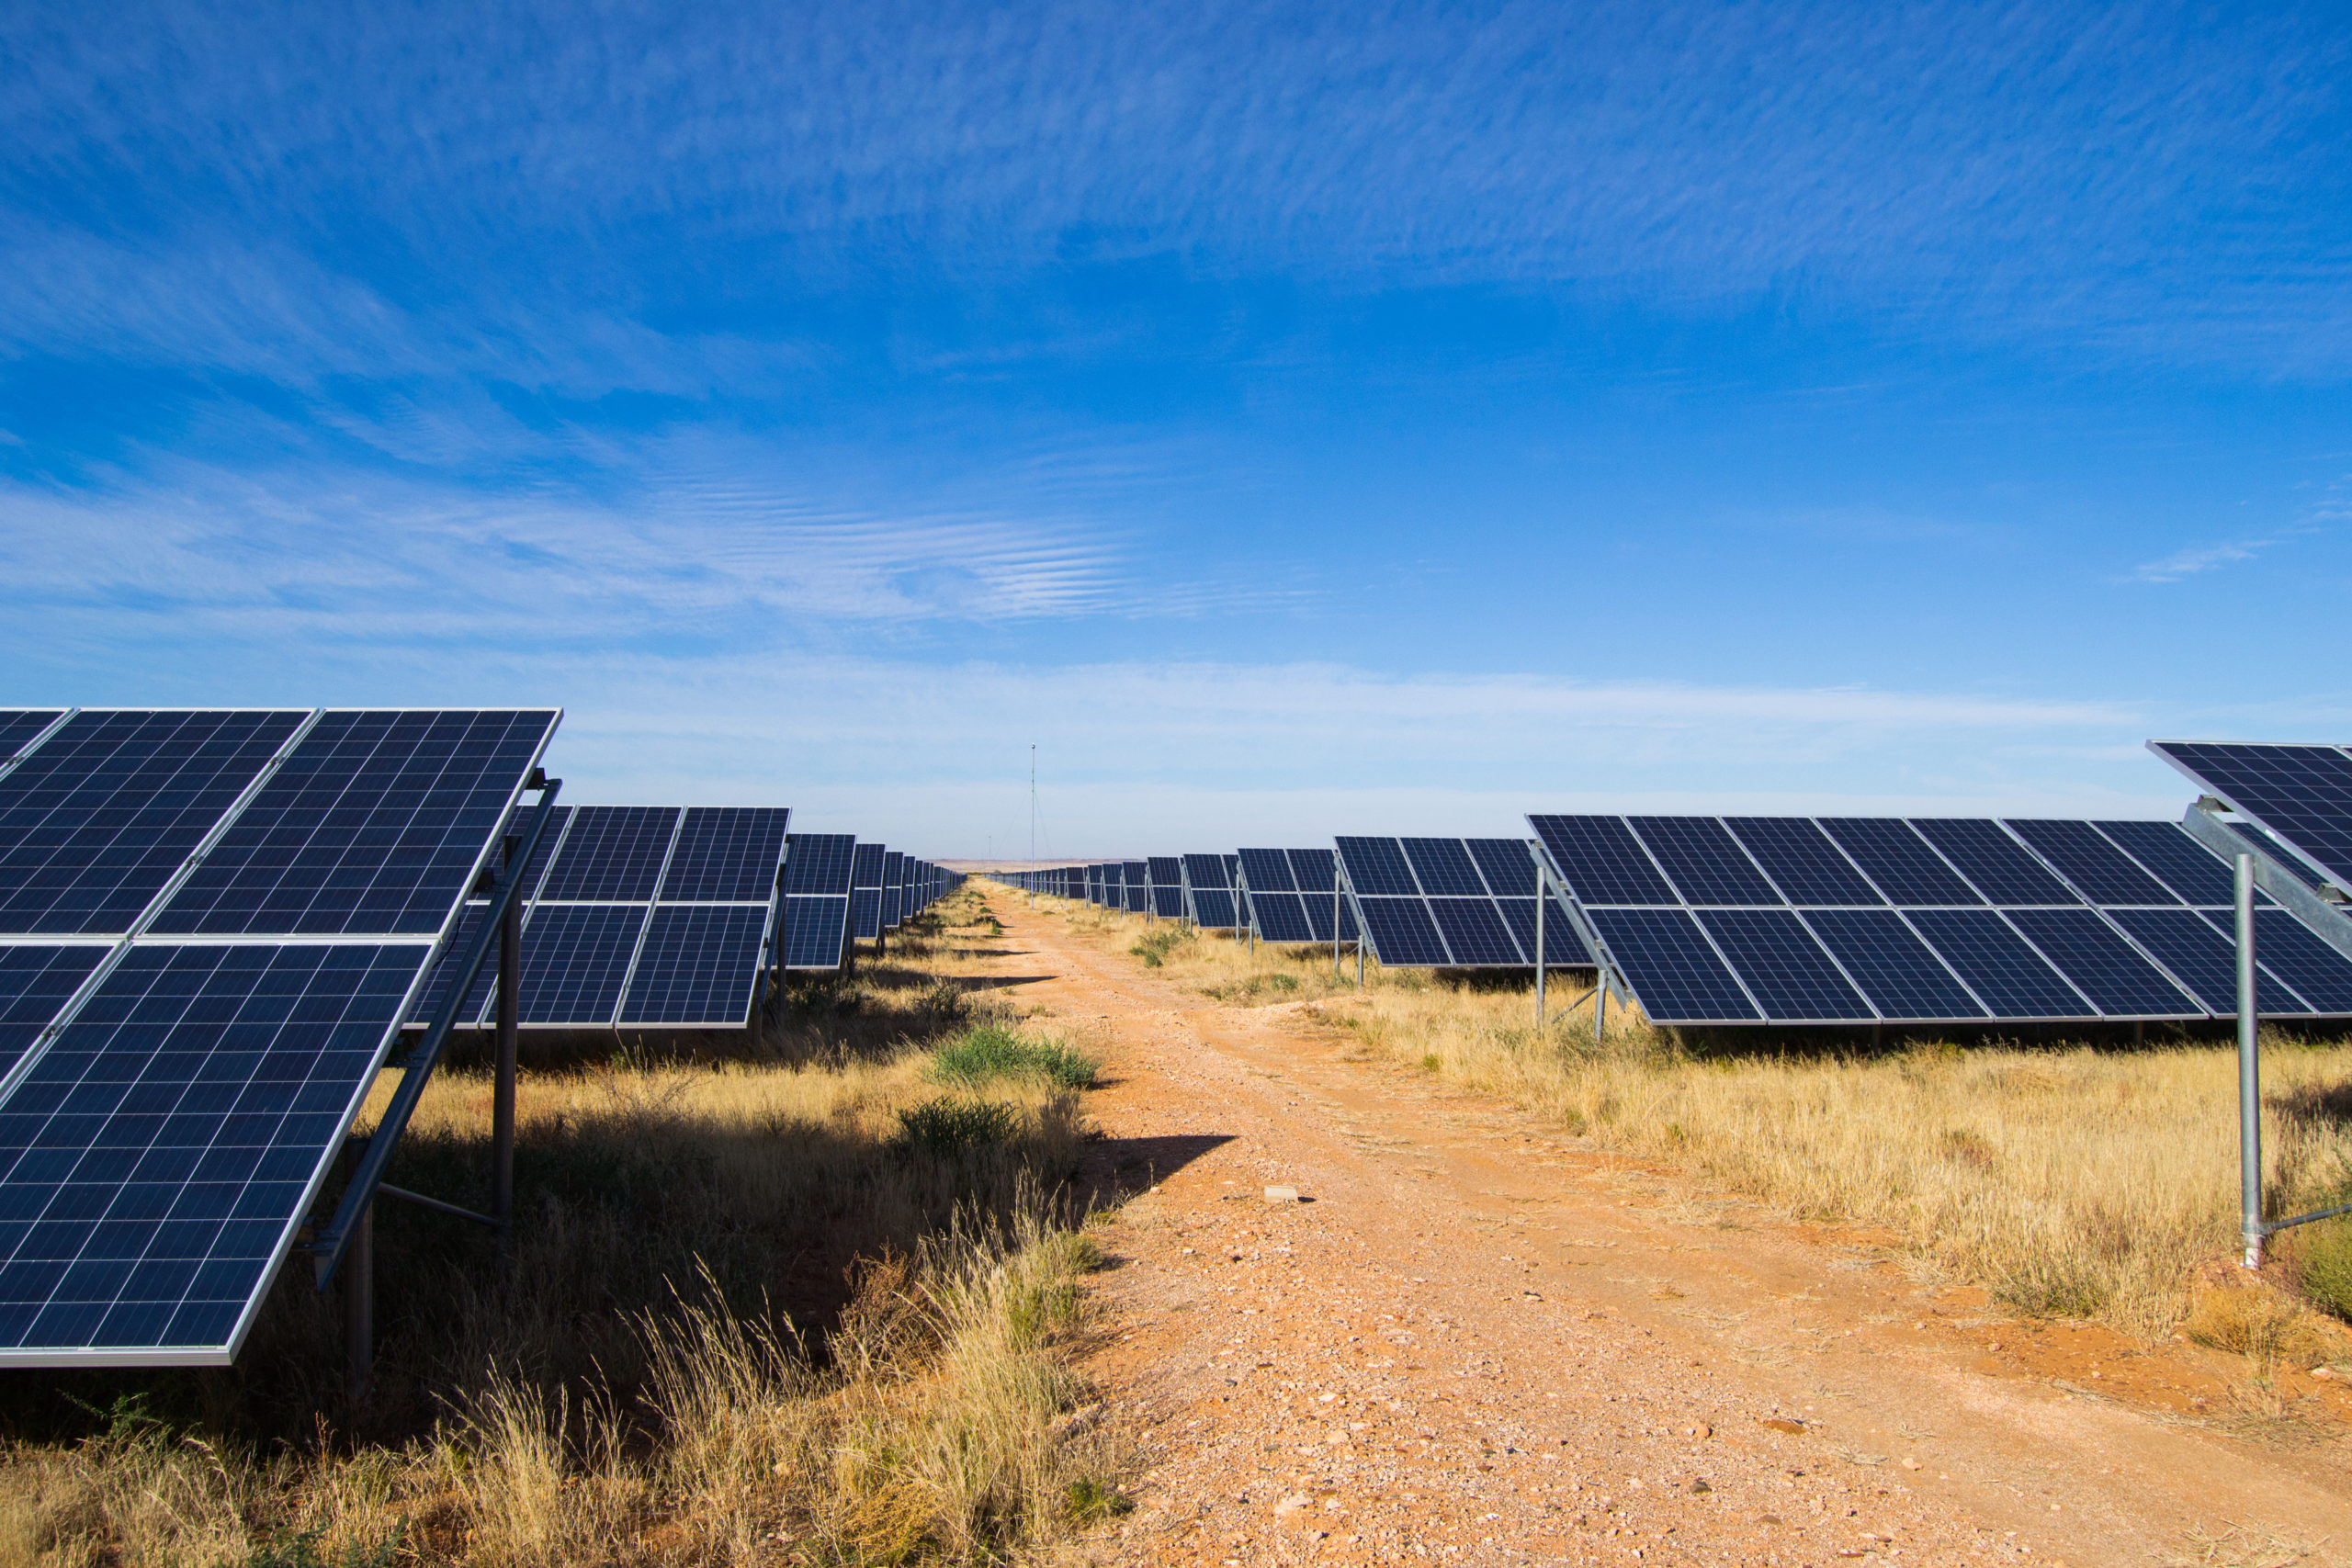 Energy Futures: Green Grids, Electric Cooking and the Global Energy Transition (WP1746)